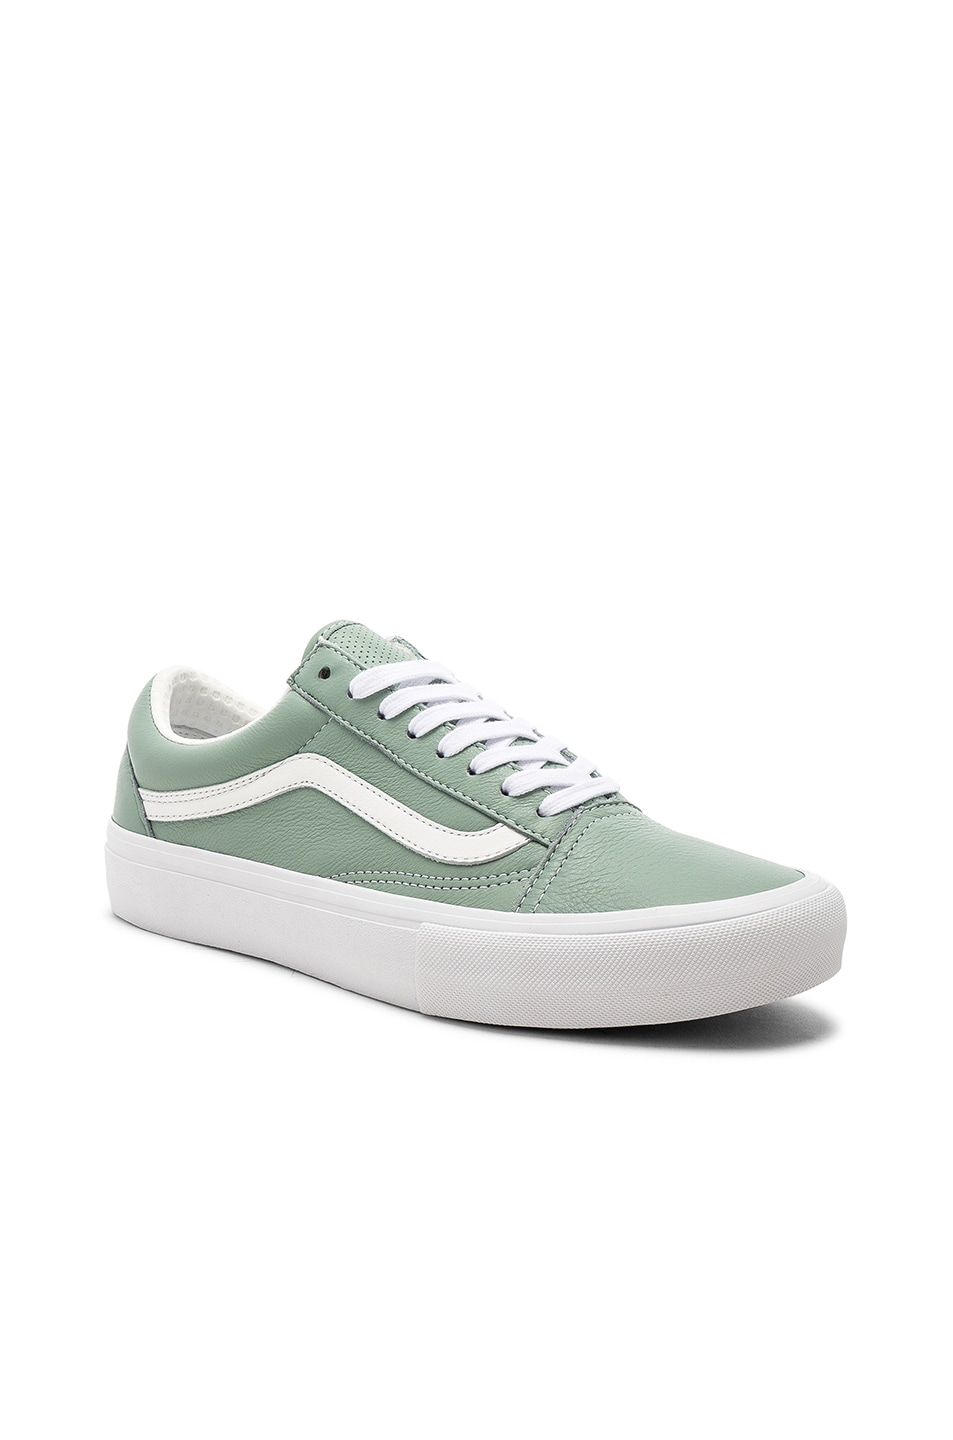 Image 2 of Vans Vault Italian Leather Old Skool VLT LX in Cielo 1a910dac7